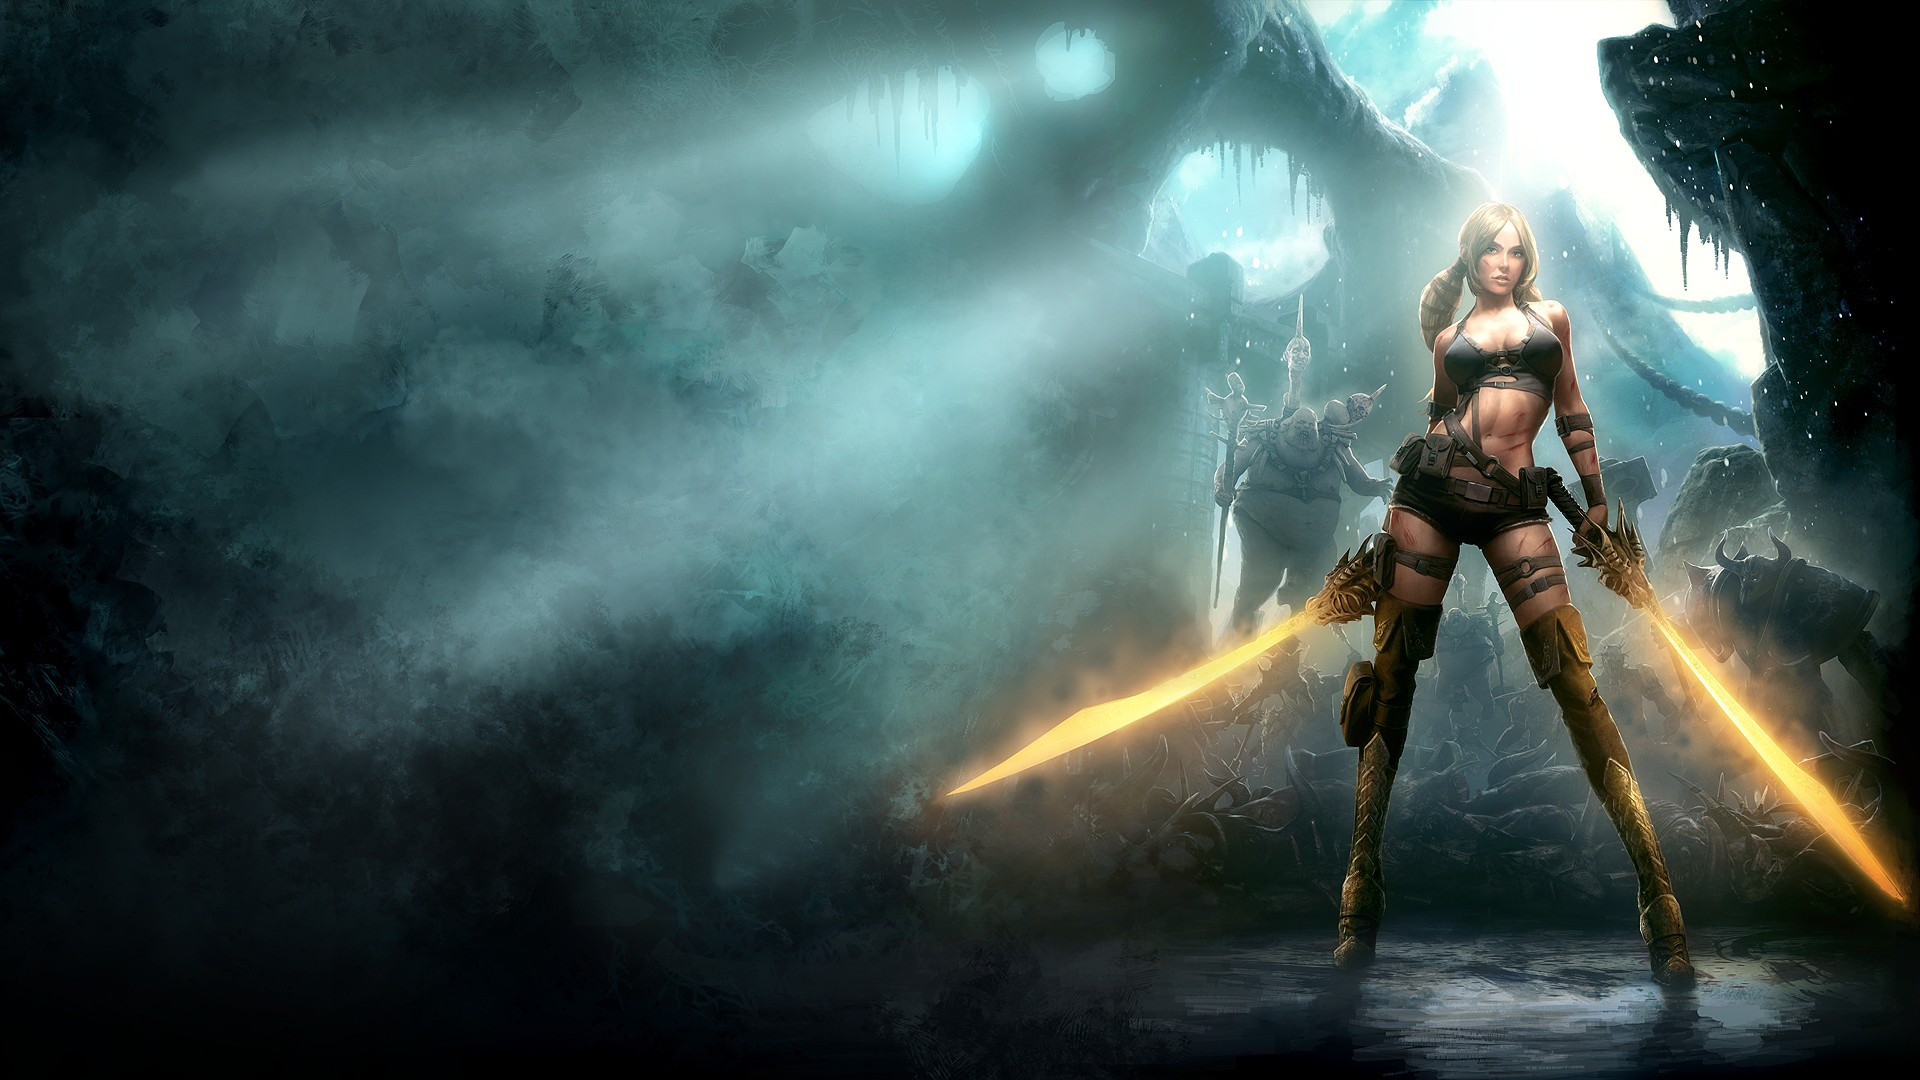 Blades Of Time Hd Wallpapers  Desktop And Mobile Images -4423